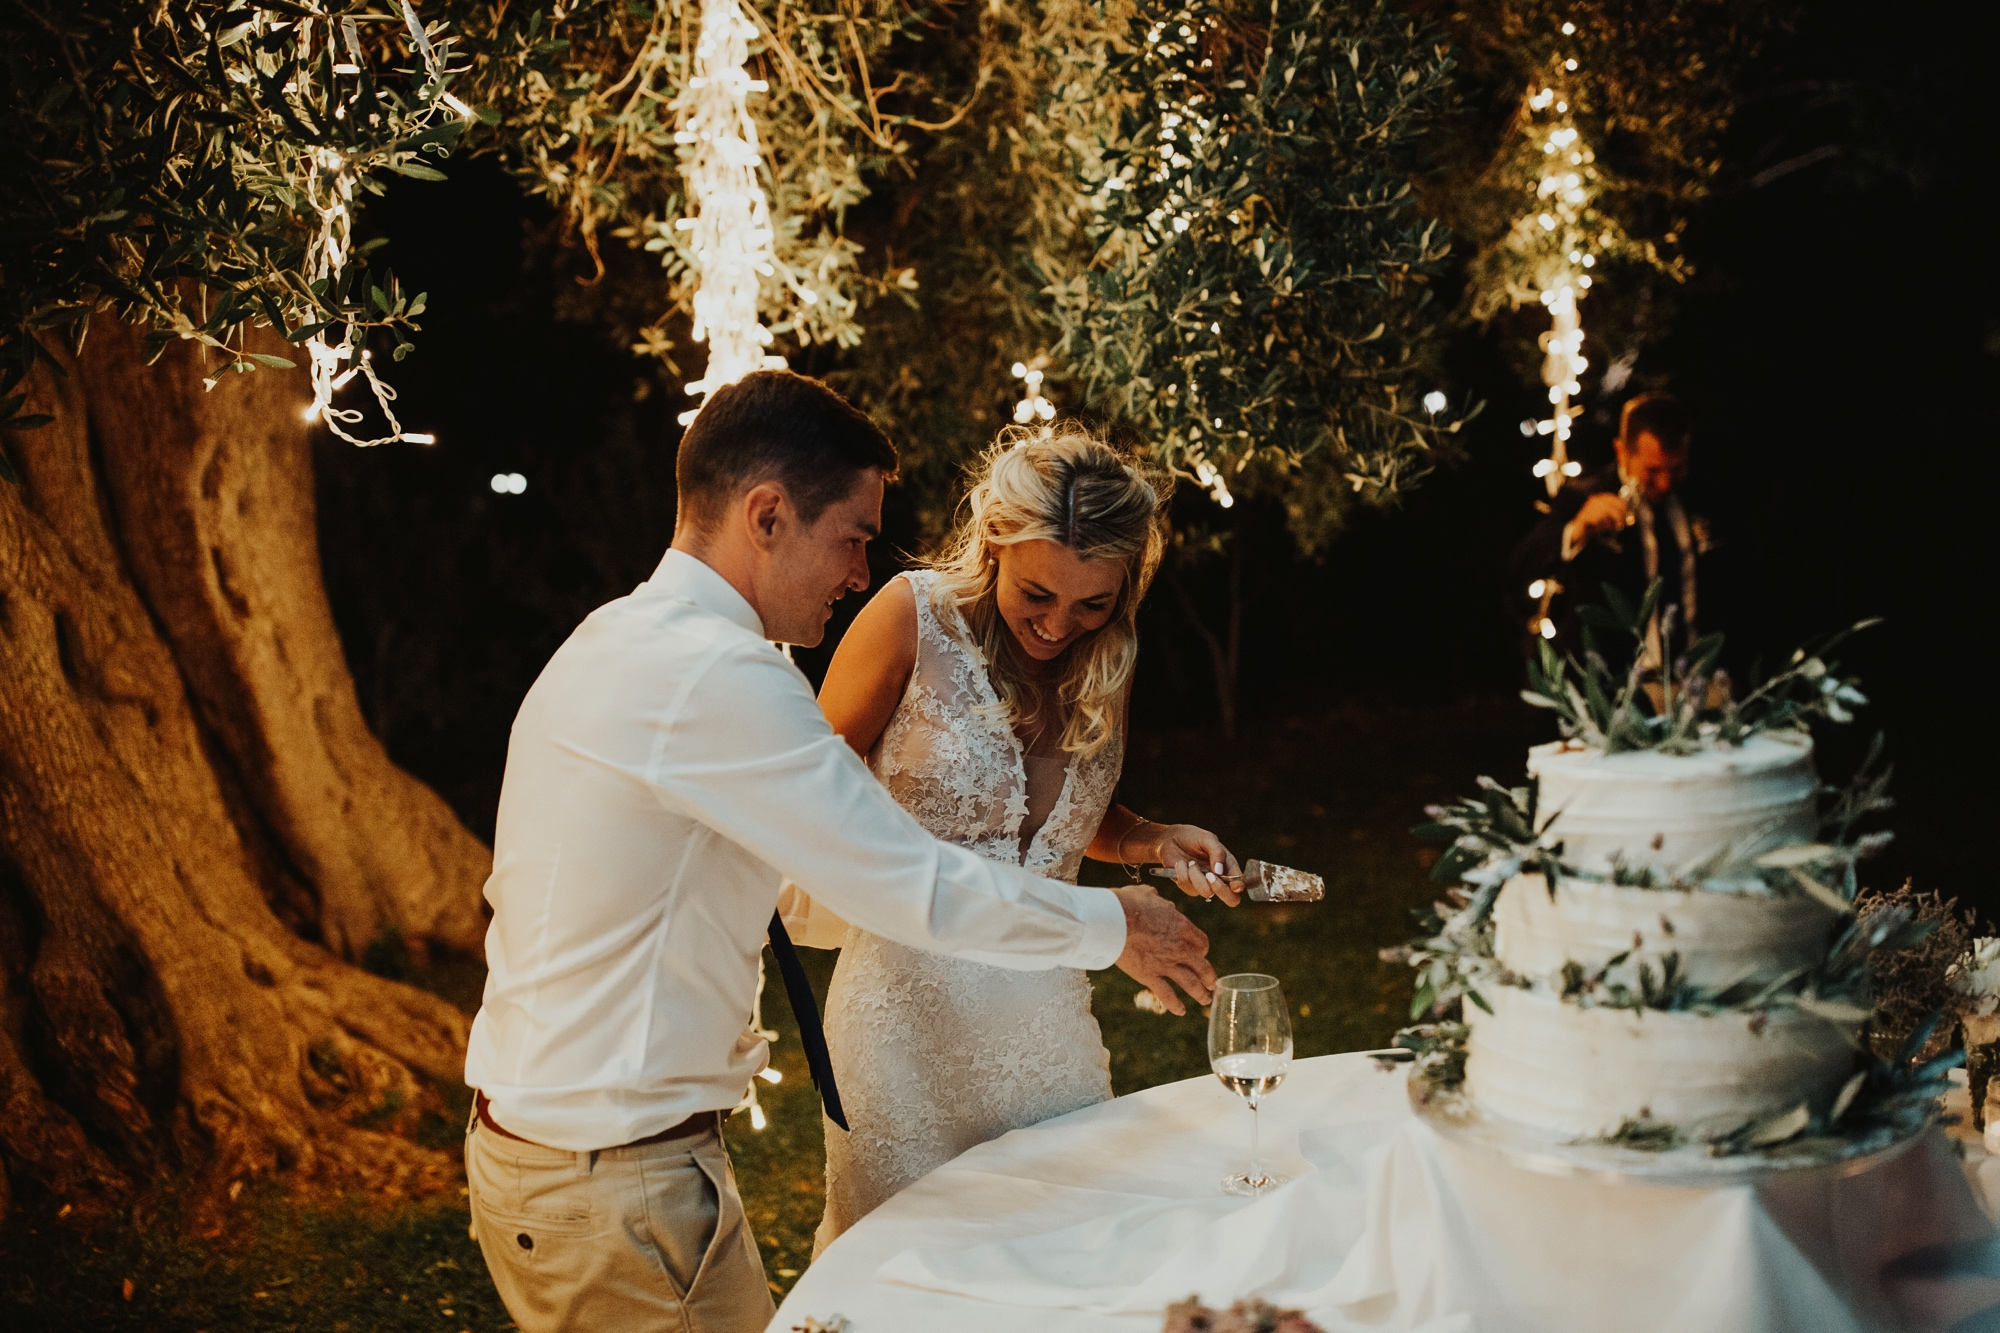 0000000081_Rob and Lucy-995_Weddings_Destination_Italy_got_Just_Engaged.jpg